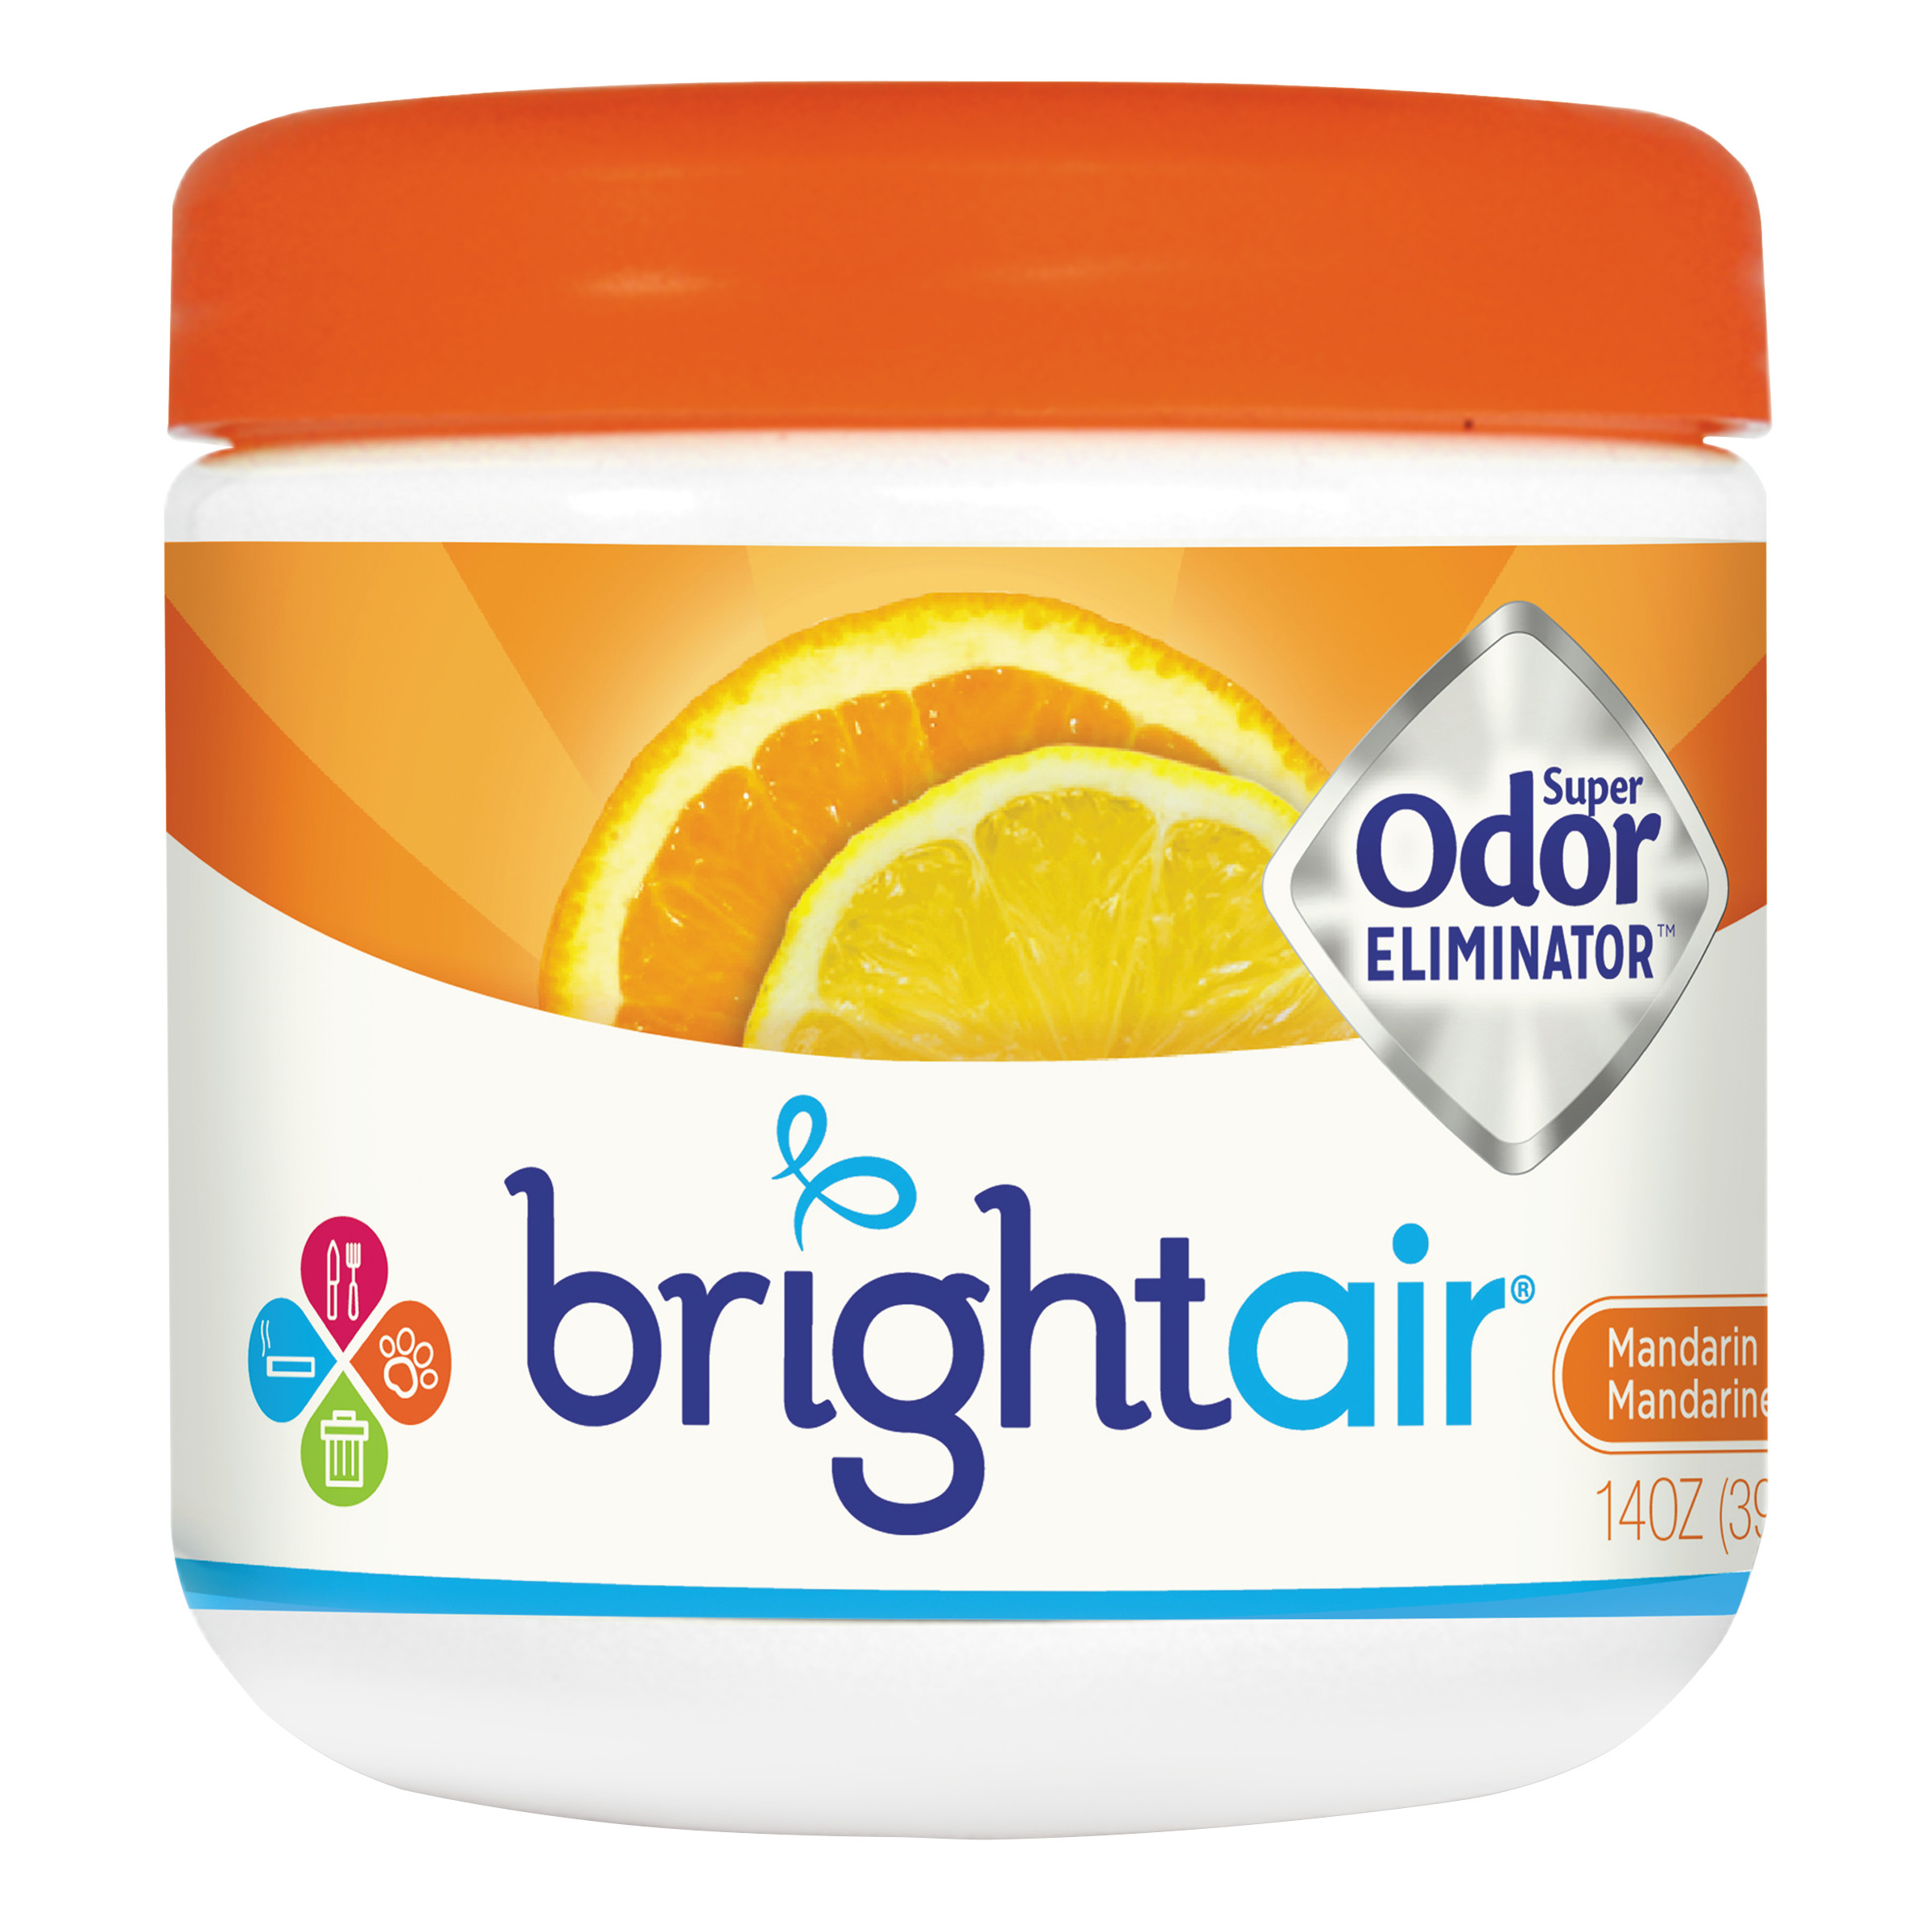 BRIGHT Air Super Odor Eliminator, Mandarin Orange and Fresh Lemon, 14oz